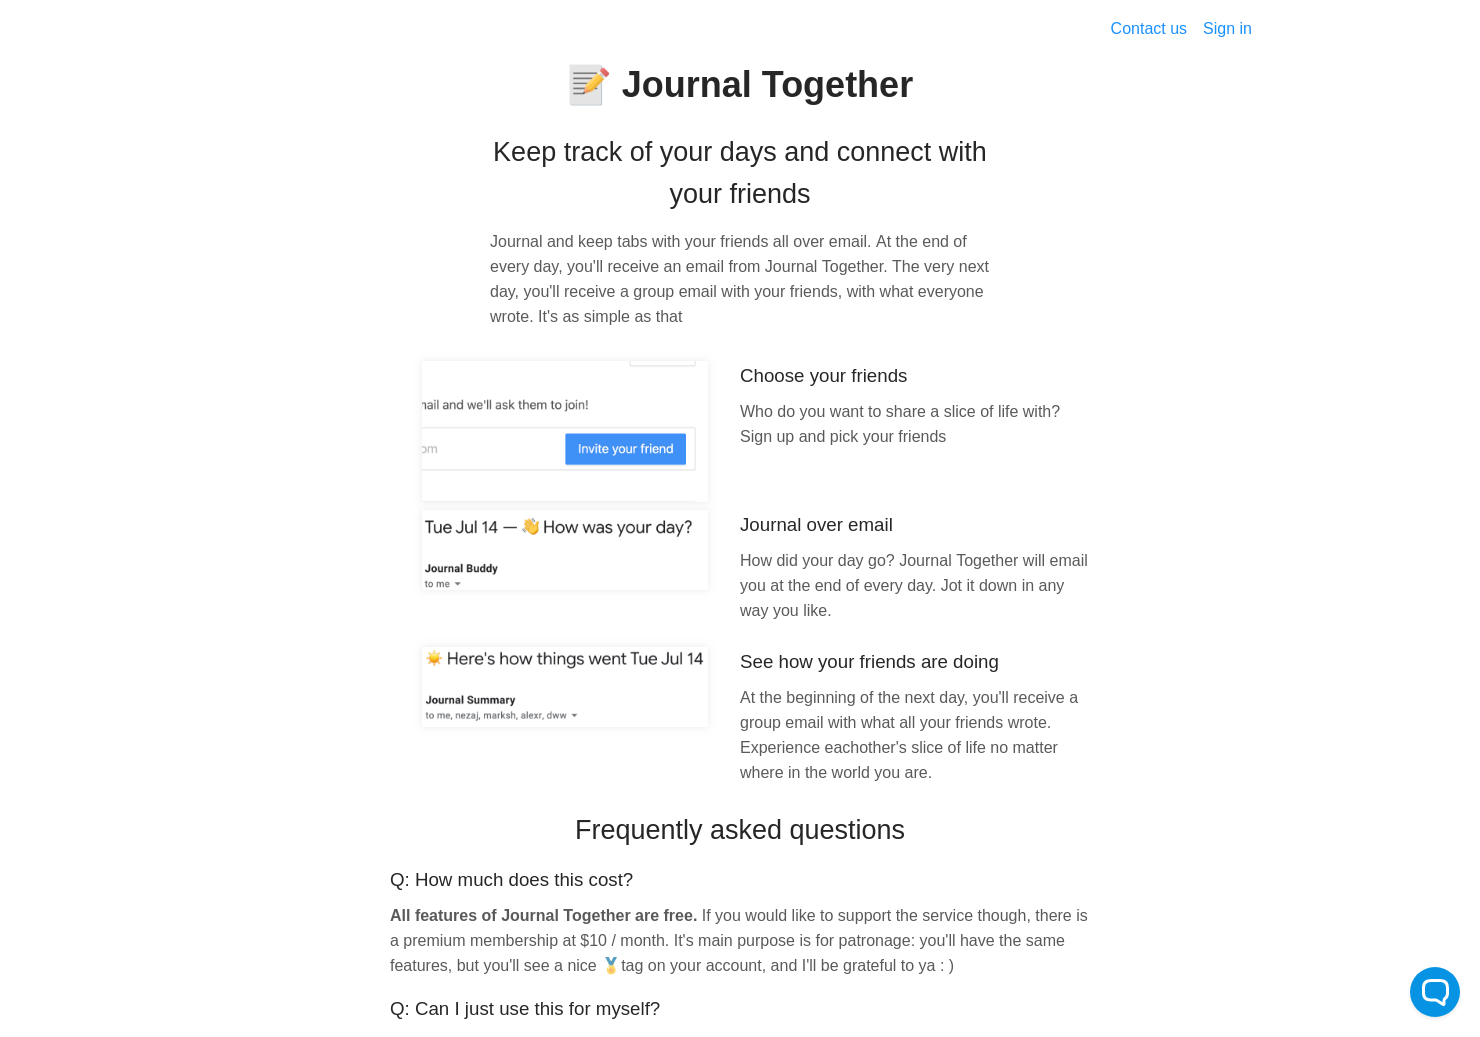 Journal Together